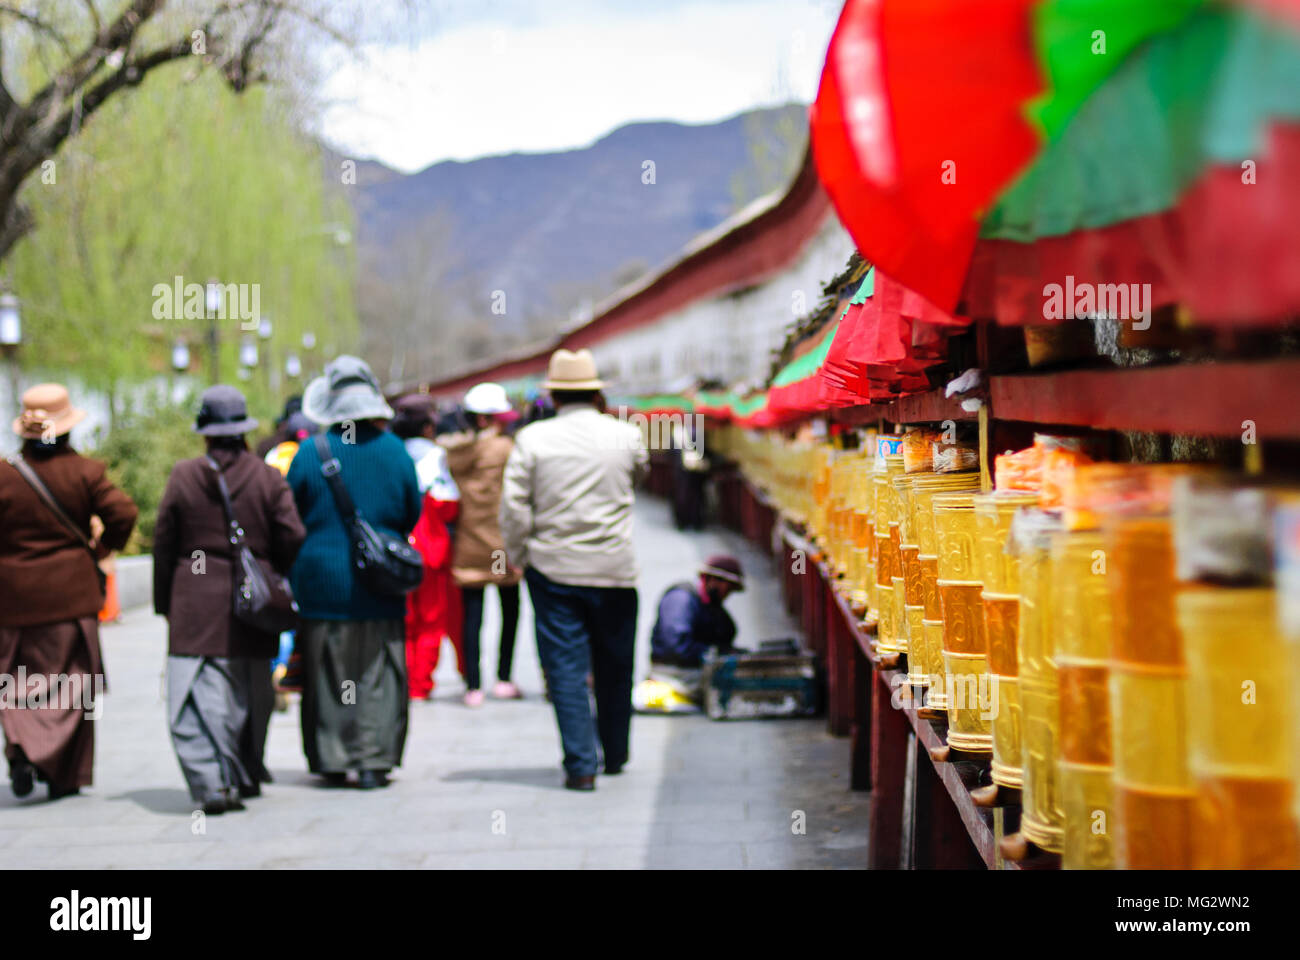 People walking near the golden prayer drums row in the street of Lhasa, Tibet background - Stock Image